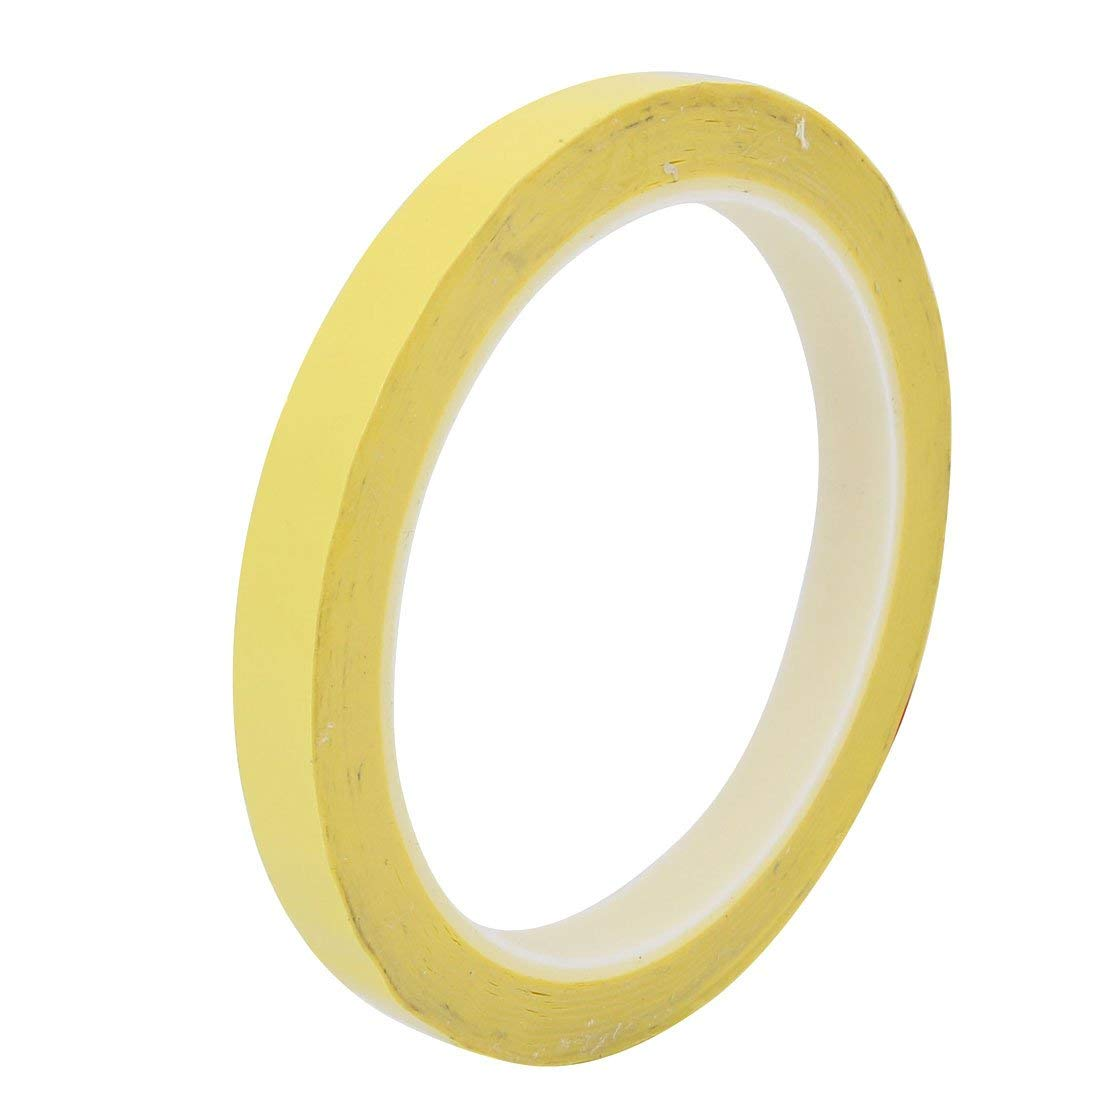 PET Plastic 10mm Width 66M Length Self-Adhesive Insulation Marking Tape Yellow Miki&Co ZZA-ZY-NET-063382